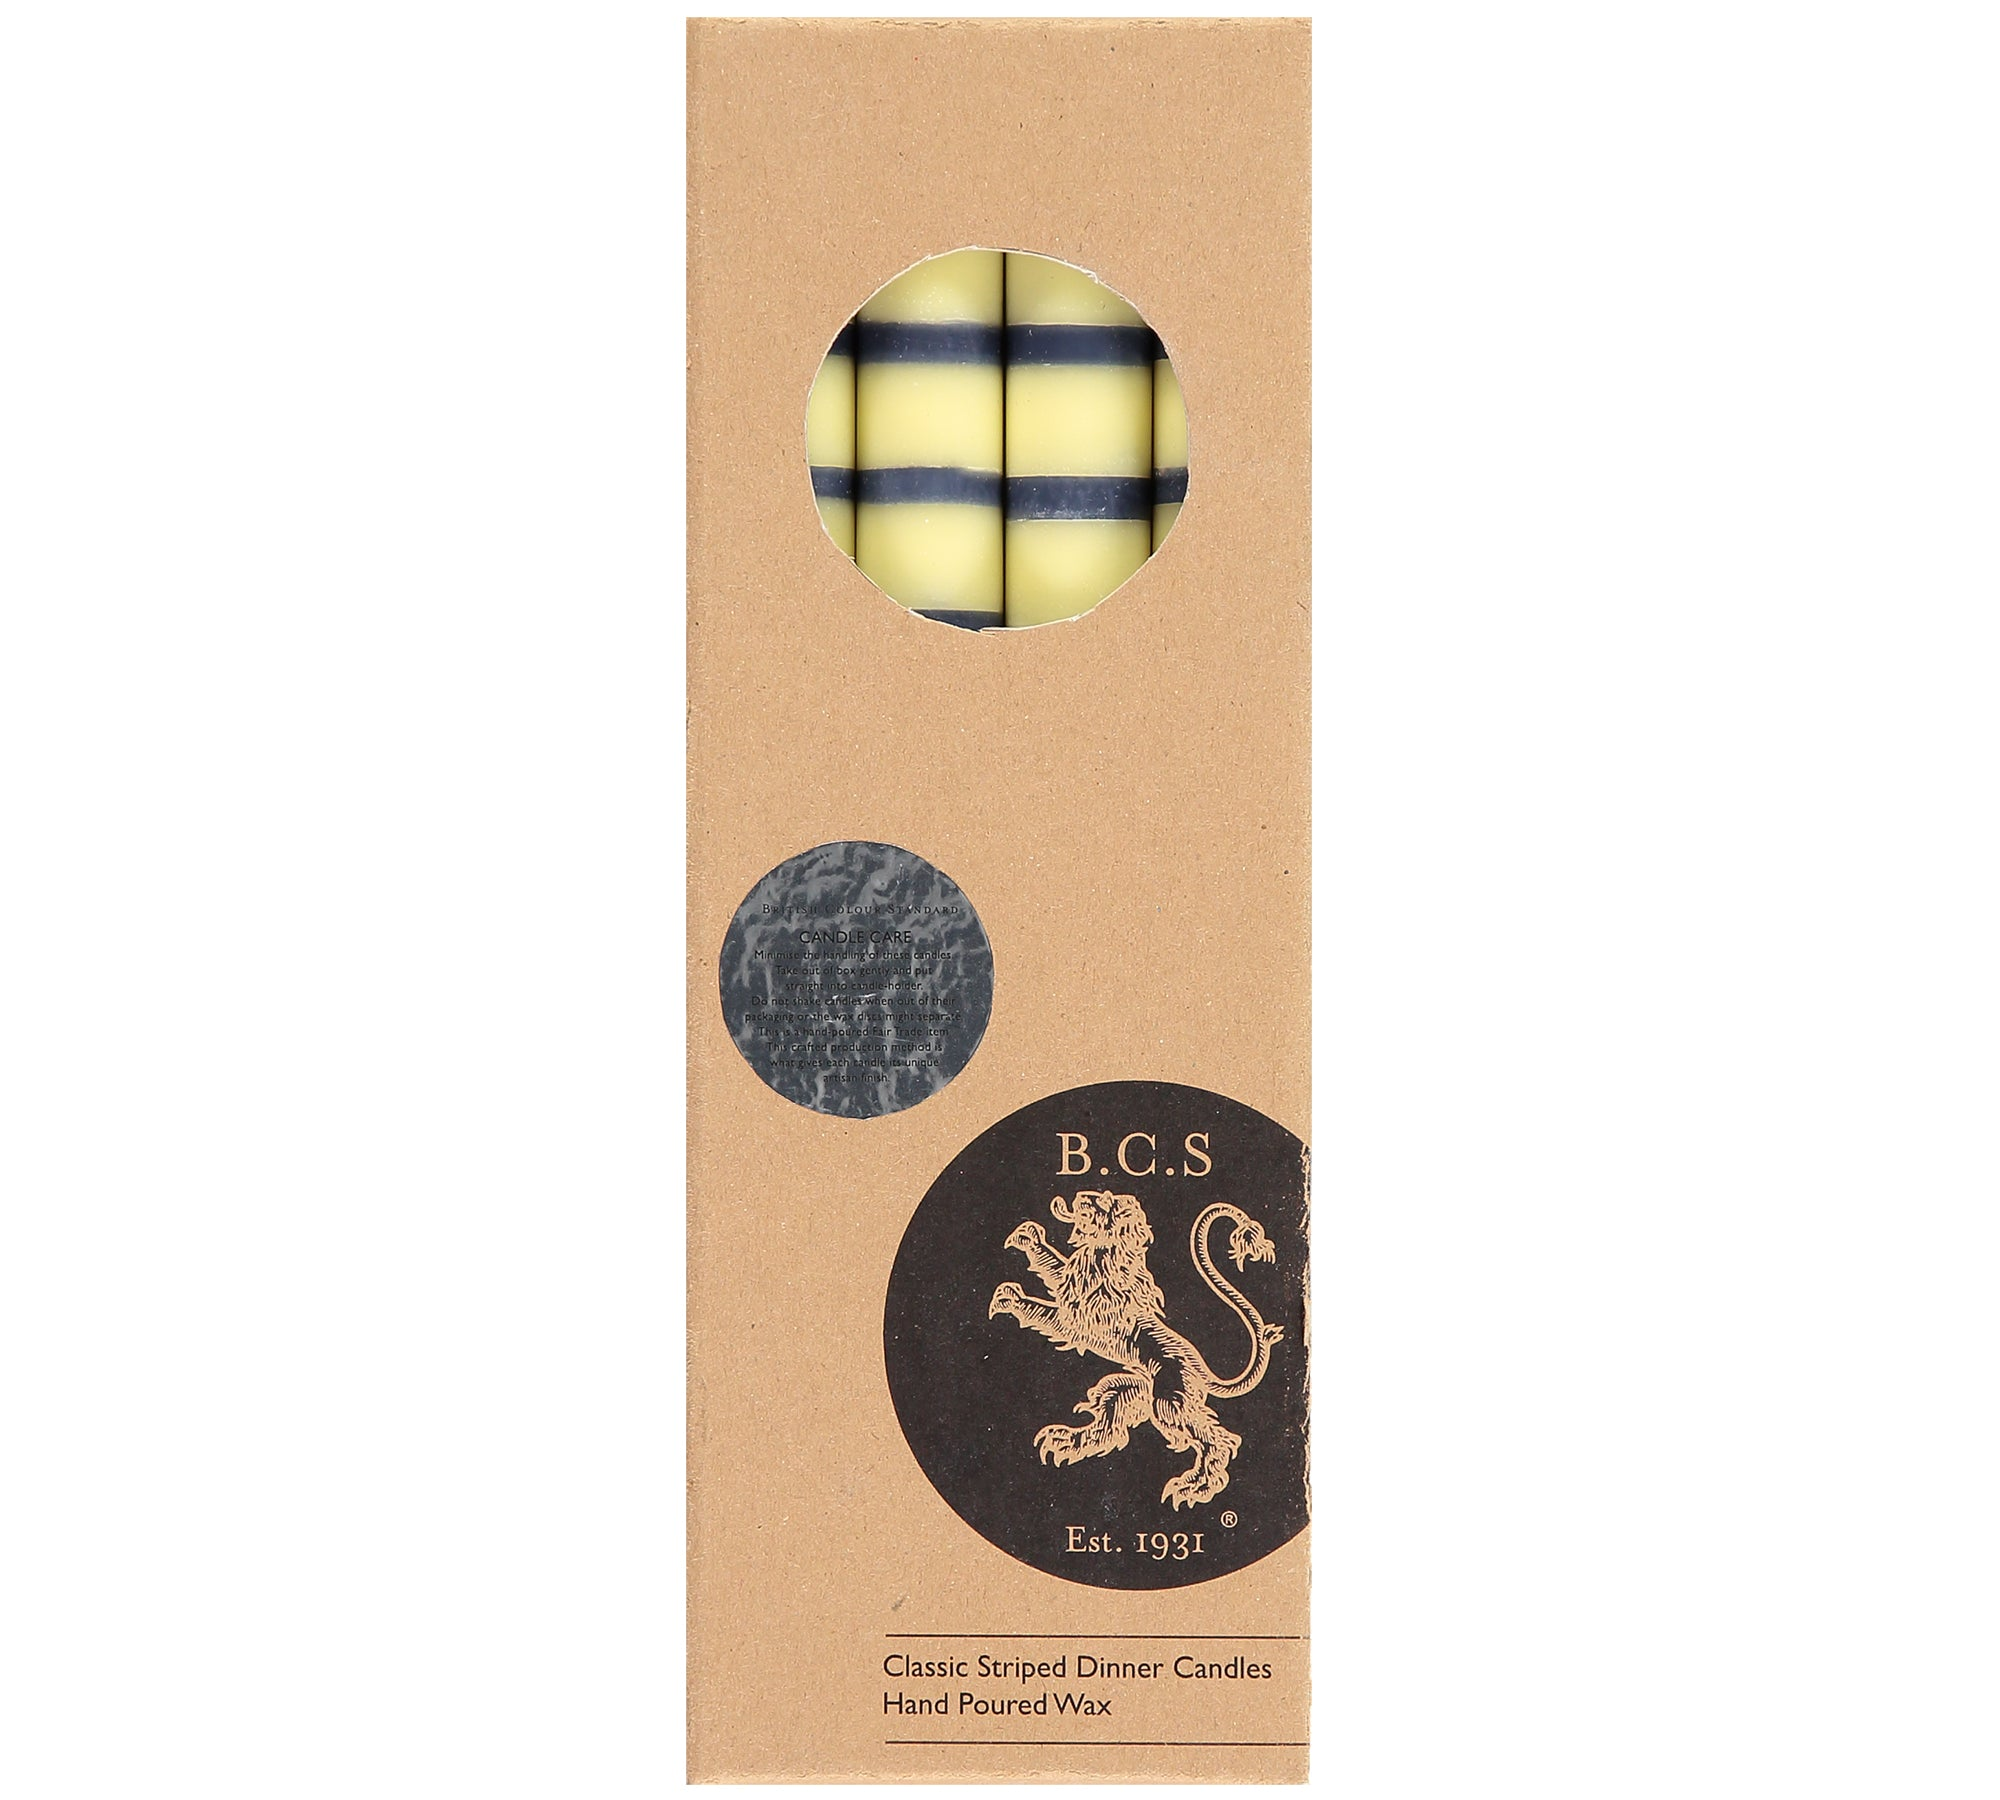 BRITISH COLOUR STANDARD - Striped Indigo, Jasmine & Olive Eco Dinner Candles, 4 per pack